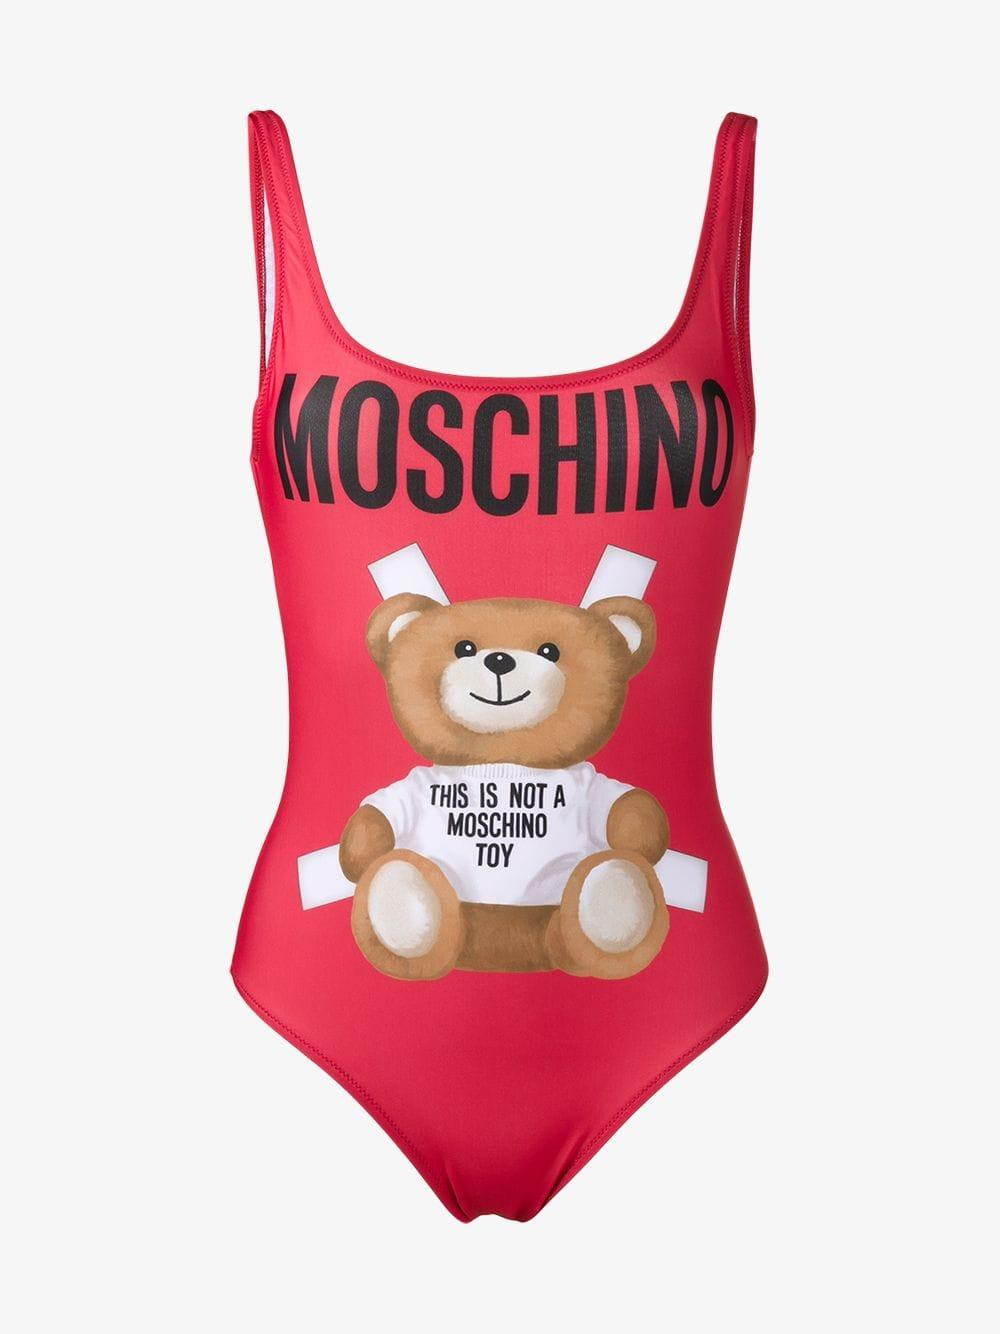 71c9a4abb2aba Moschino Teddy Bear Swimsuit in Red - Lyst